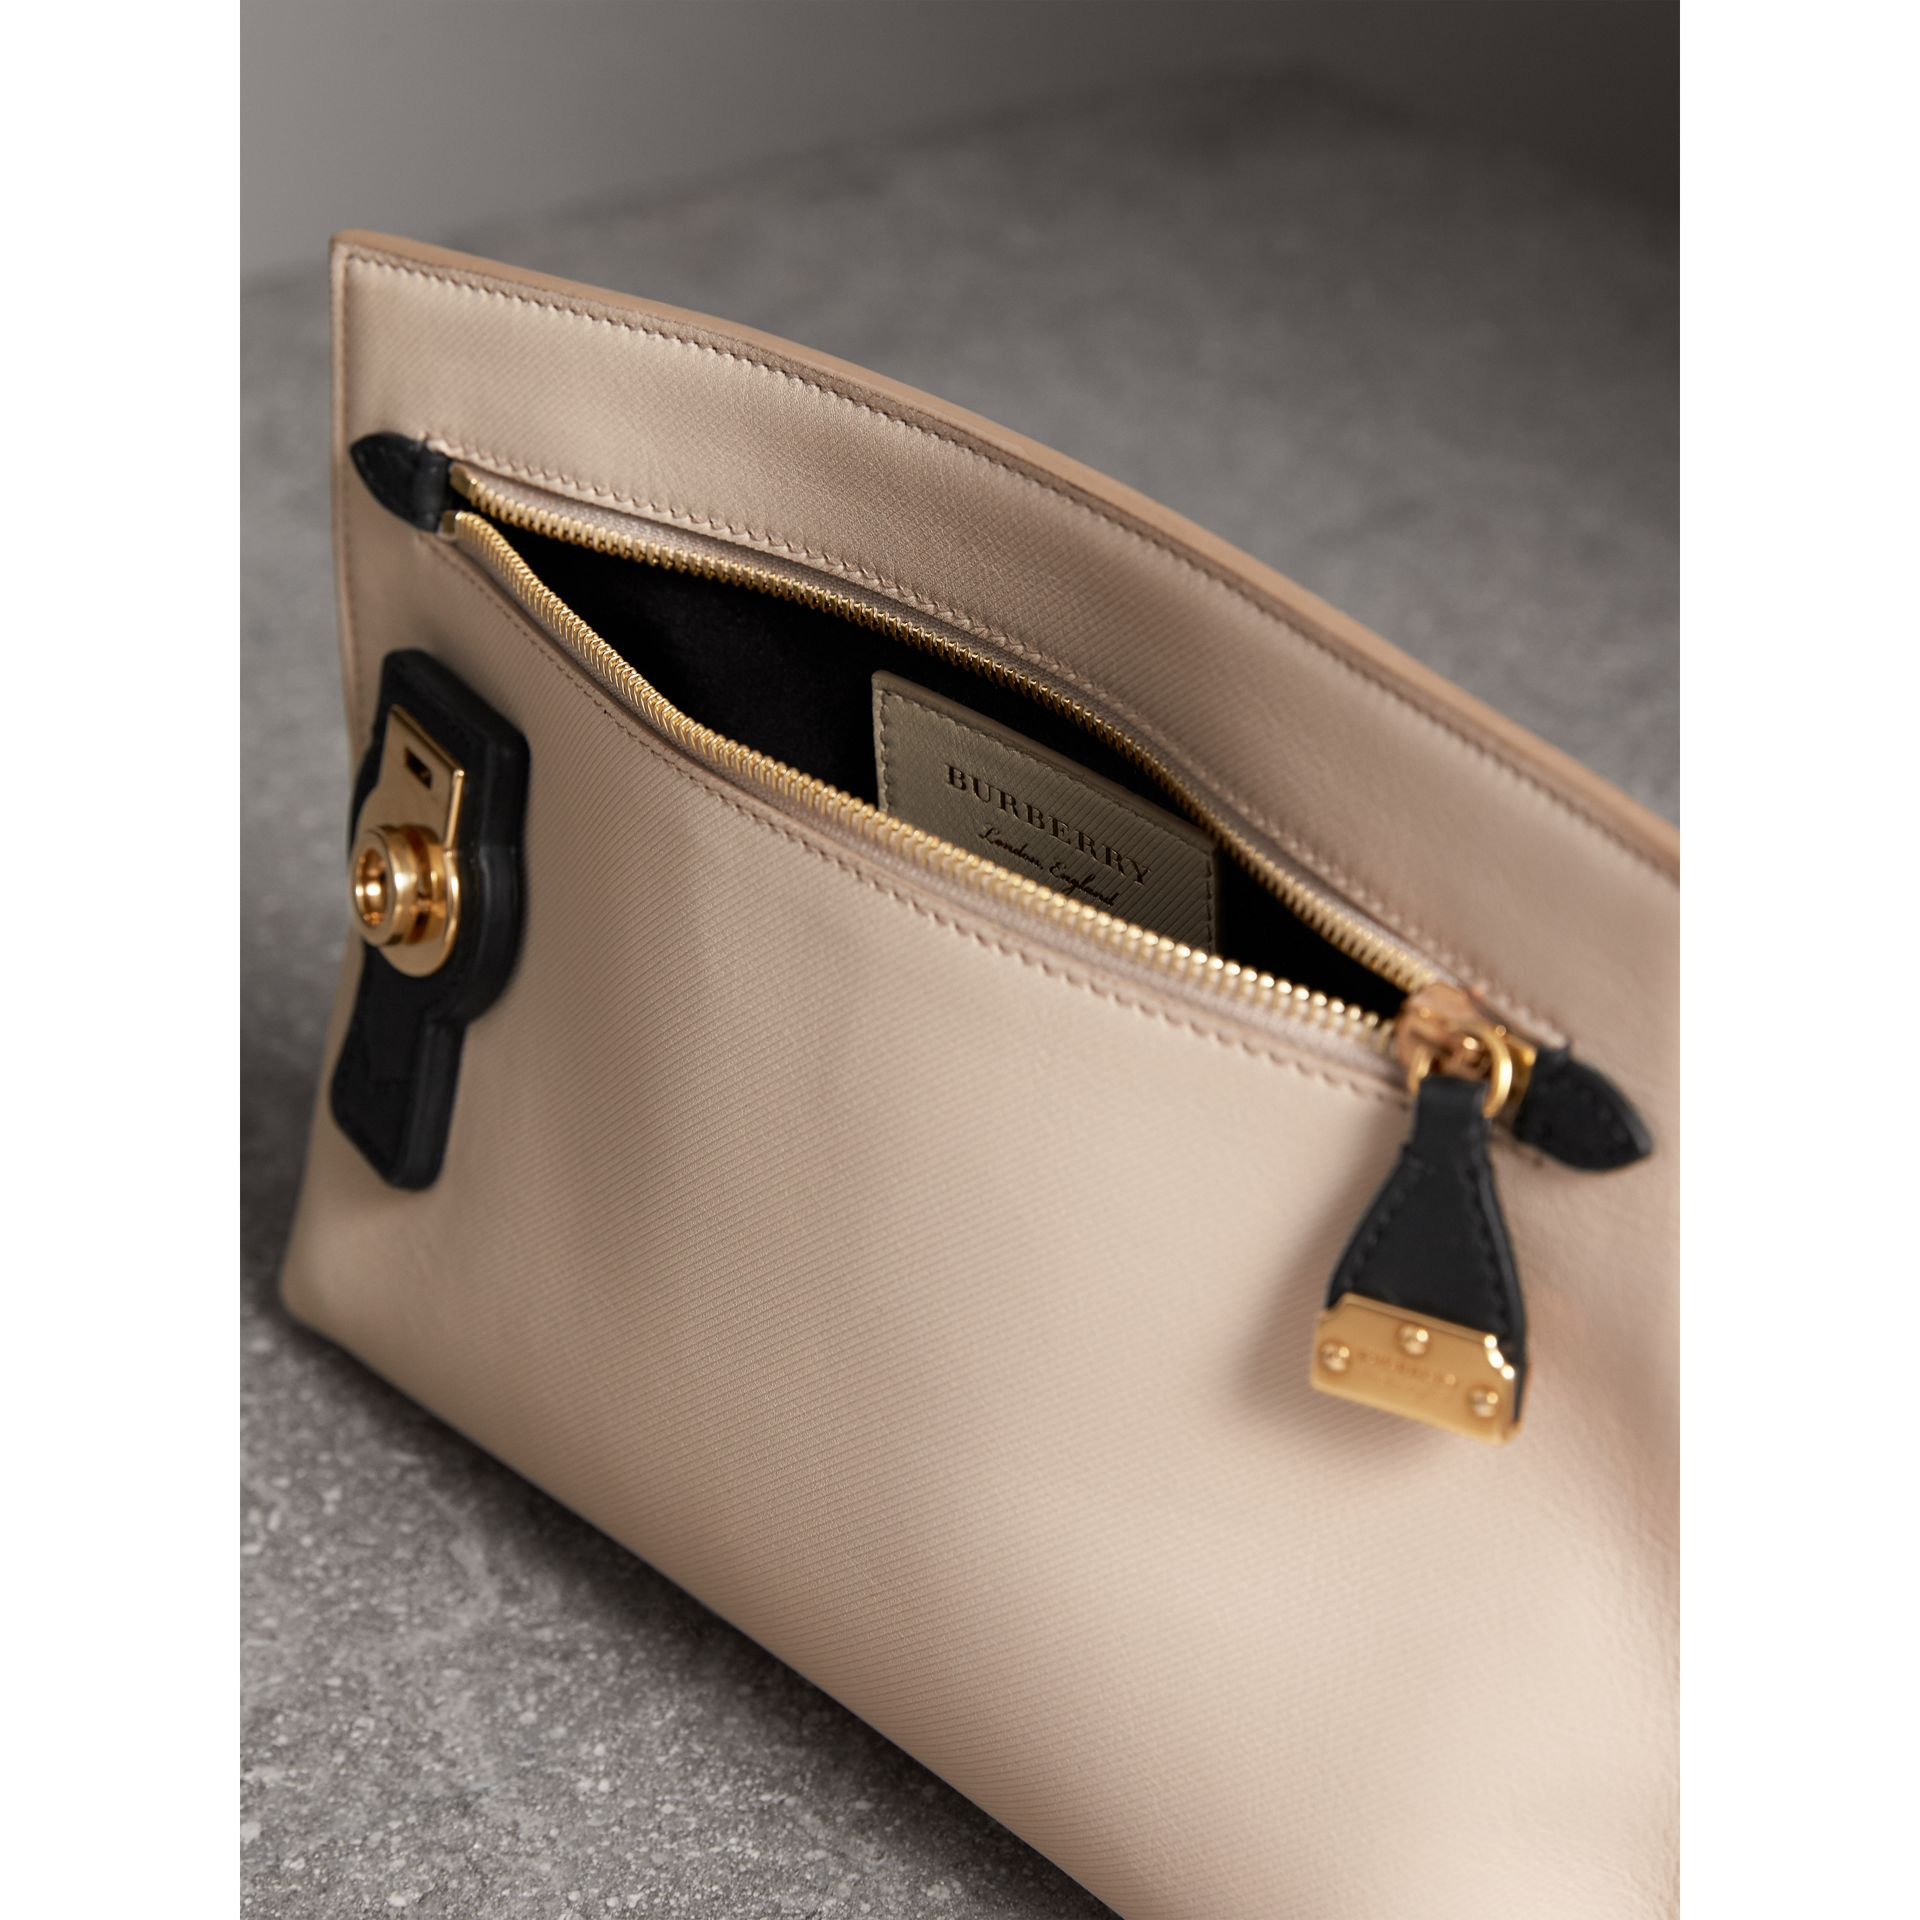 Two-tone Trench Leather Wristlet Pouch in Limestone/black - Women | Burberry United States - gallery image 4